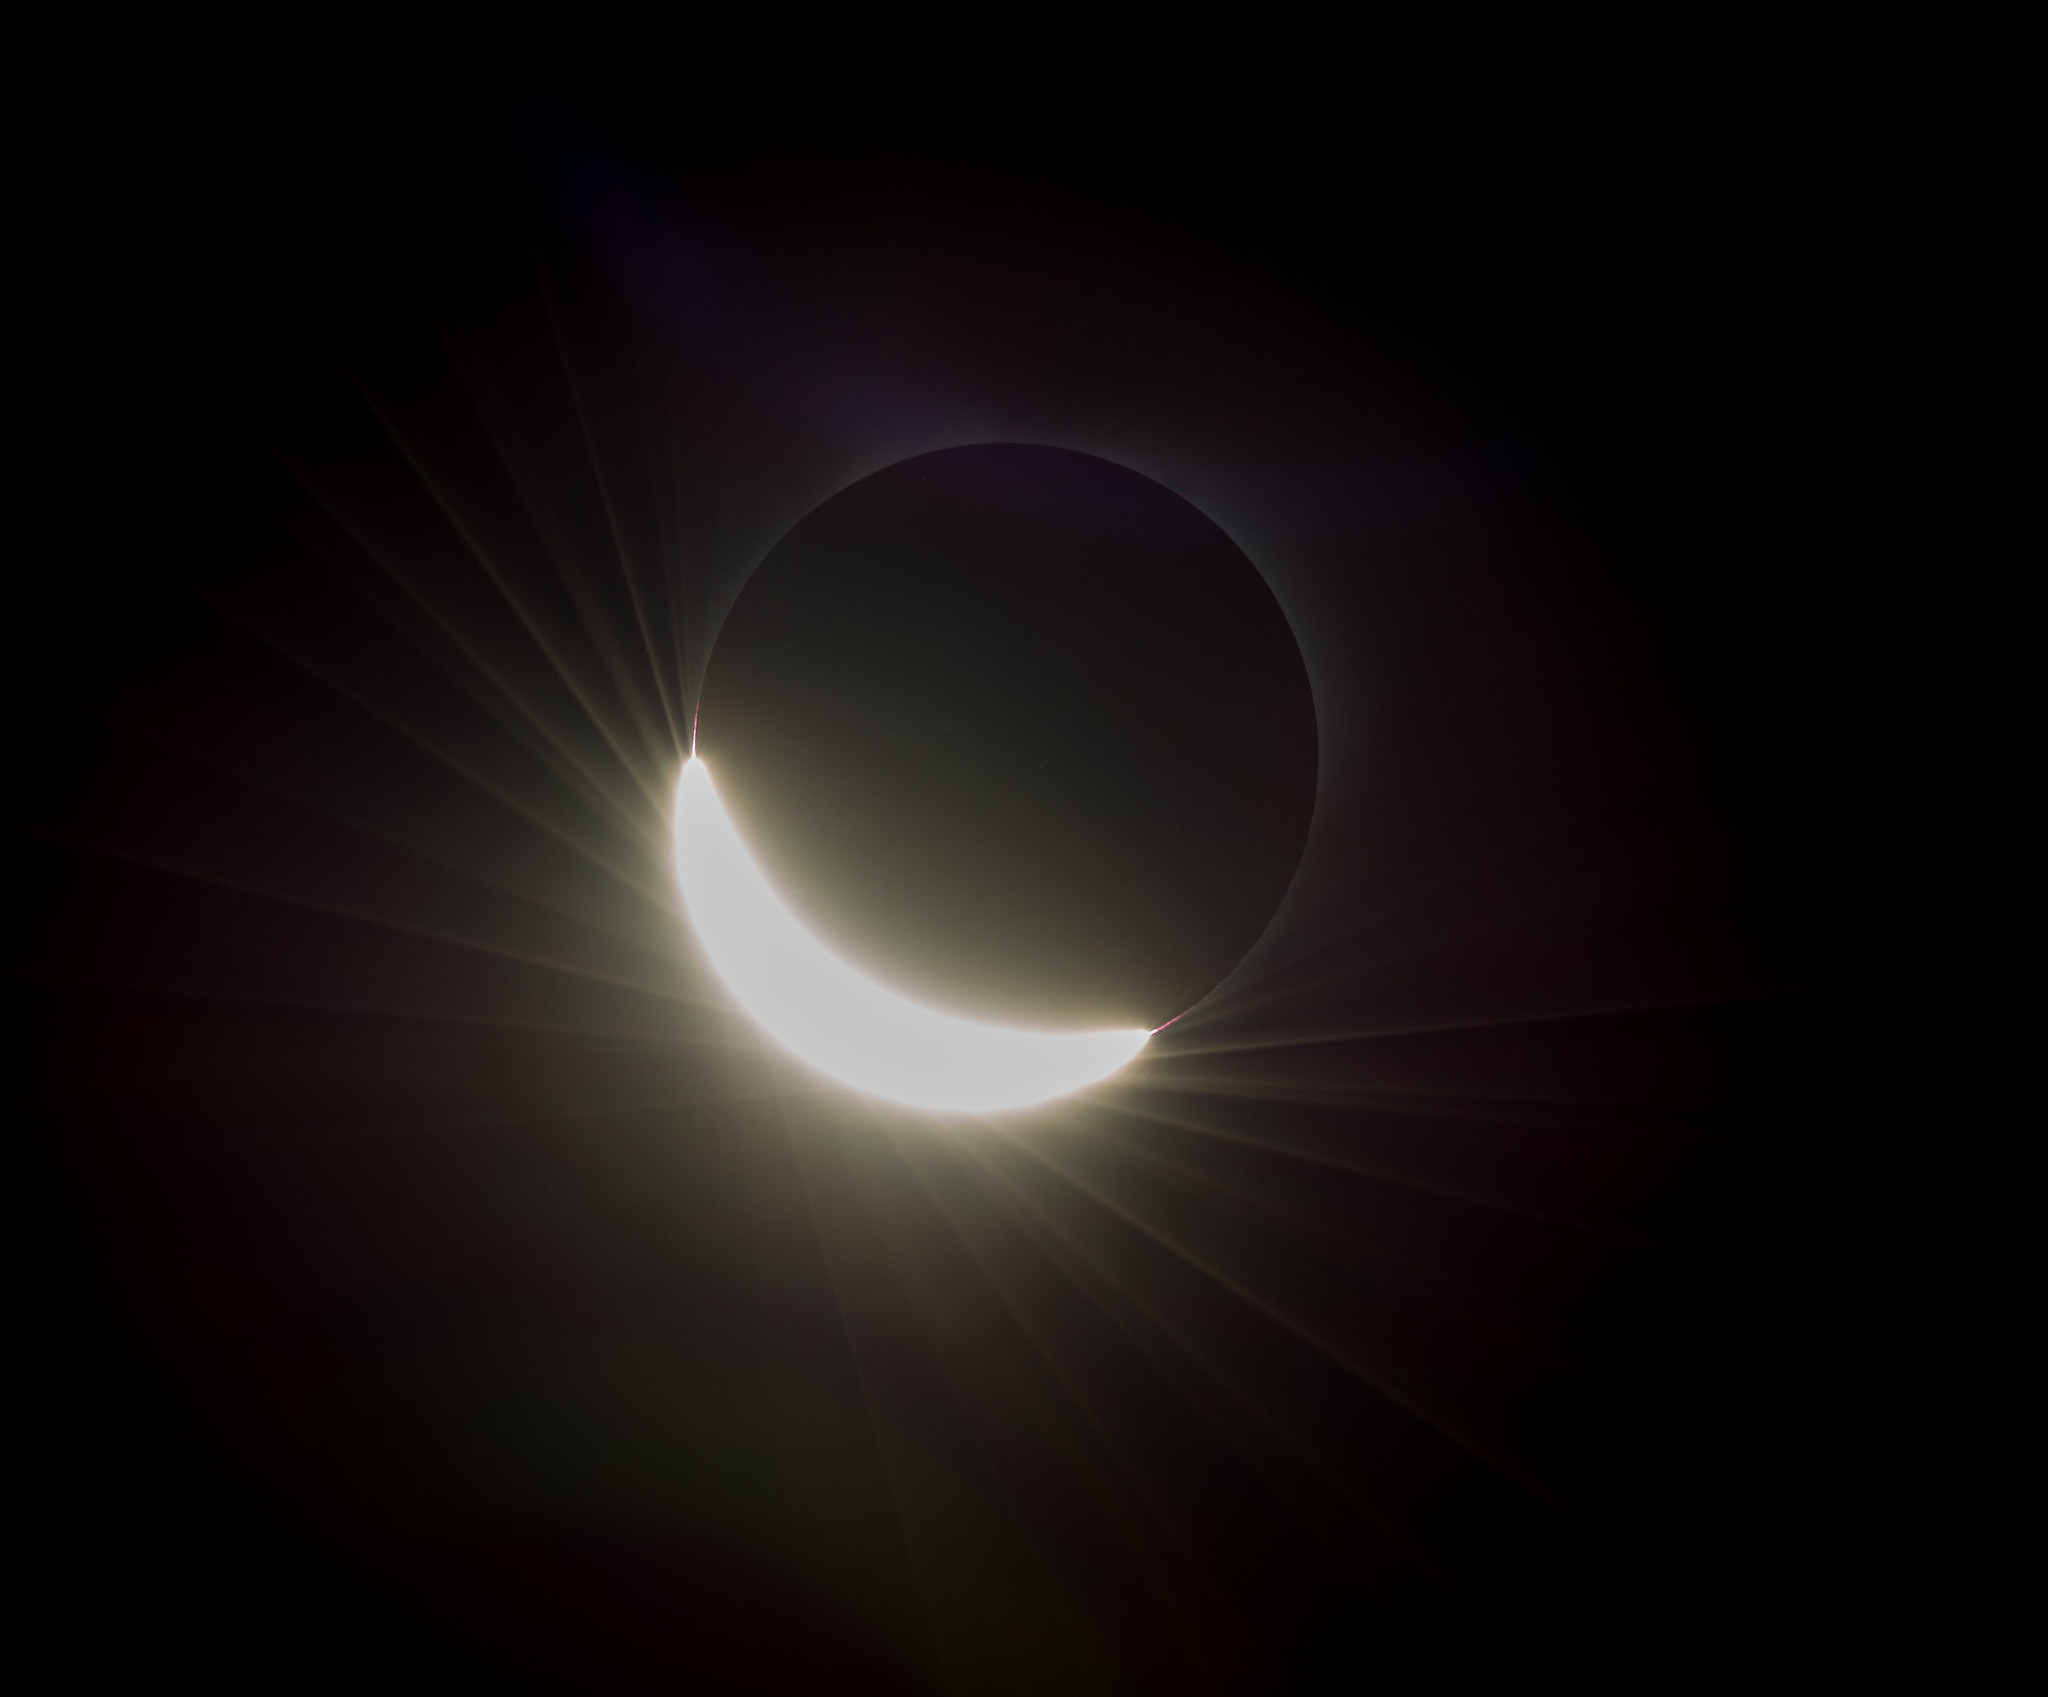 2017 Total Solar Eclipse (NHQ201708210103)